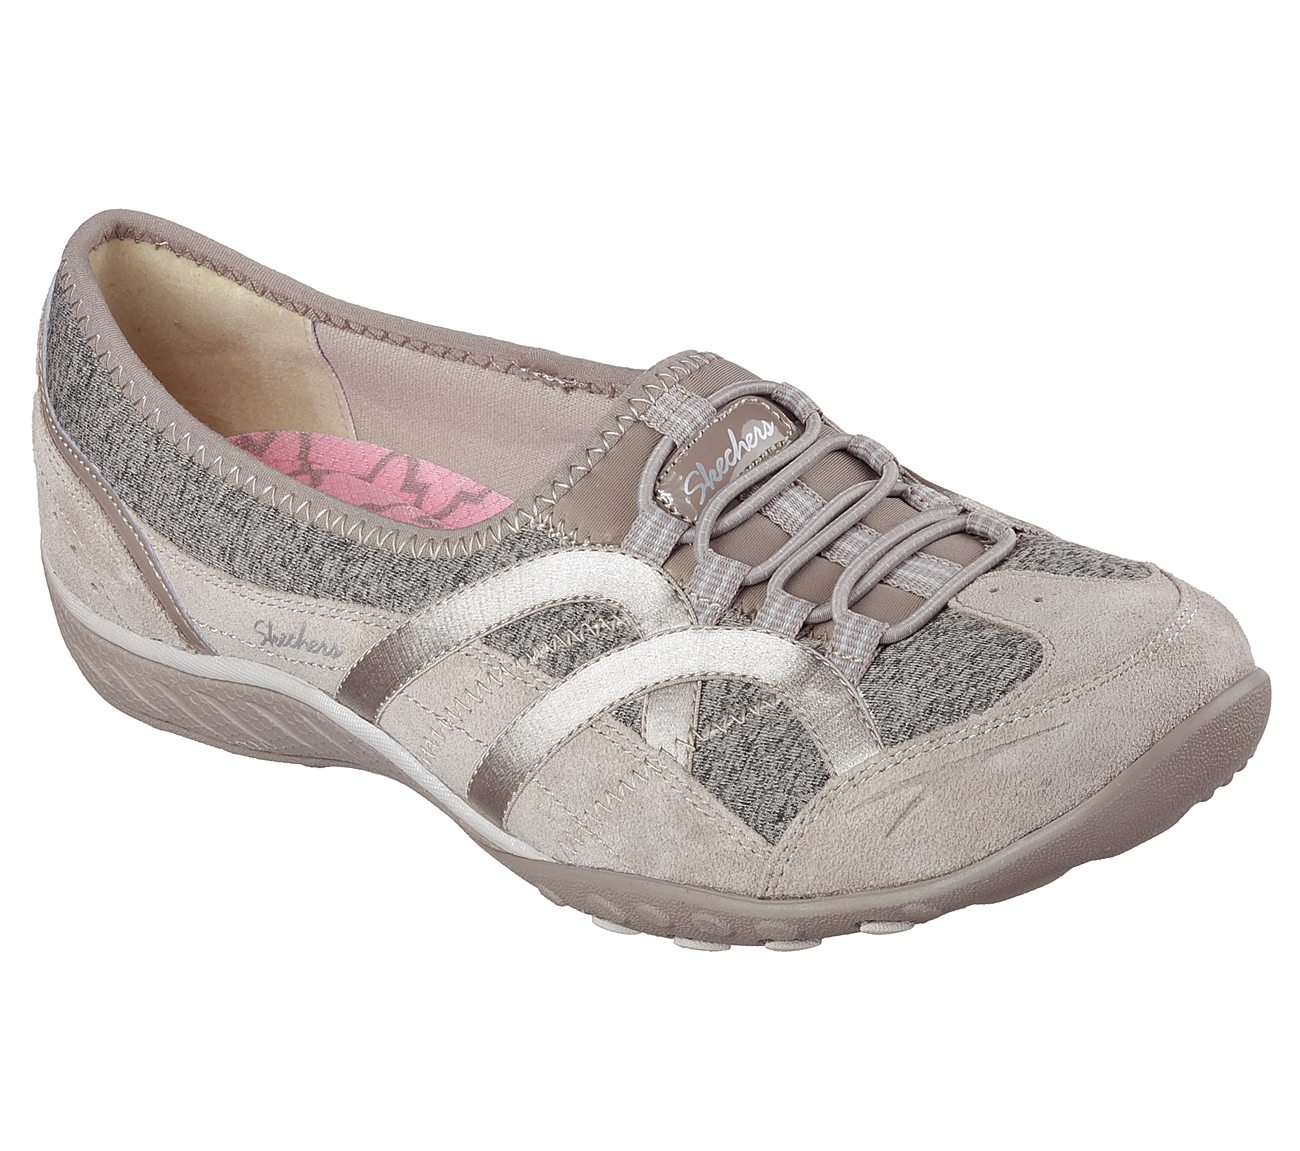 Skechers Relaxed Fit Breathe Easy Mantra Women S Shoes